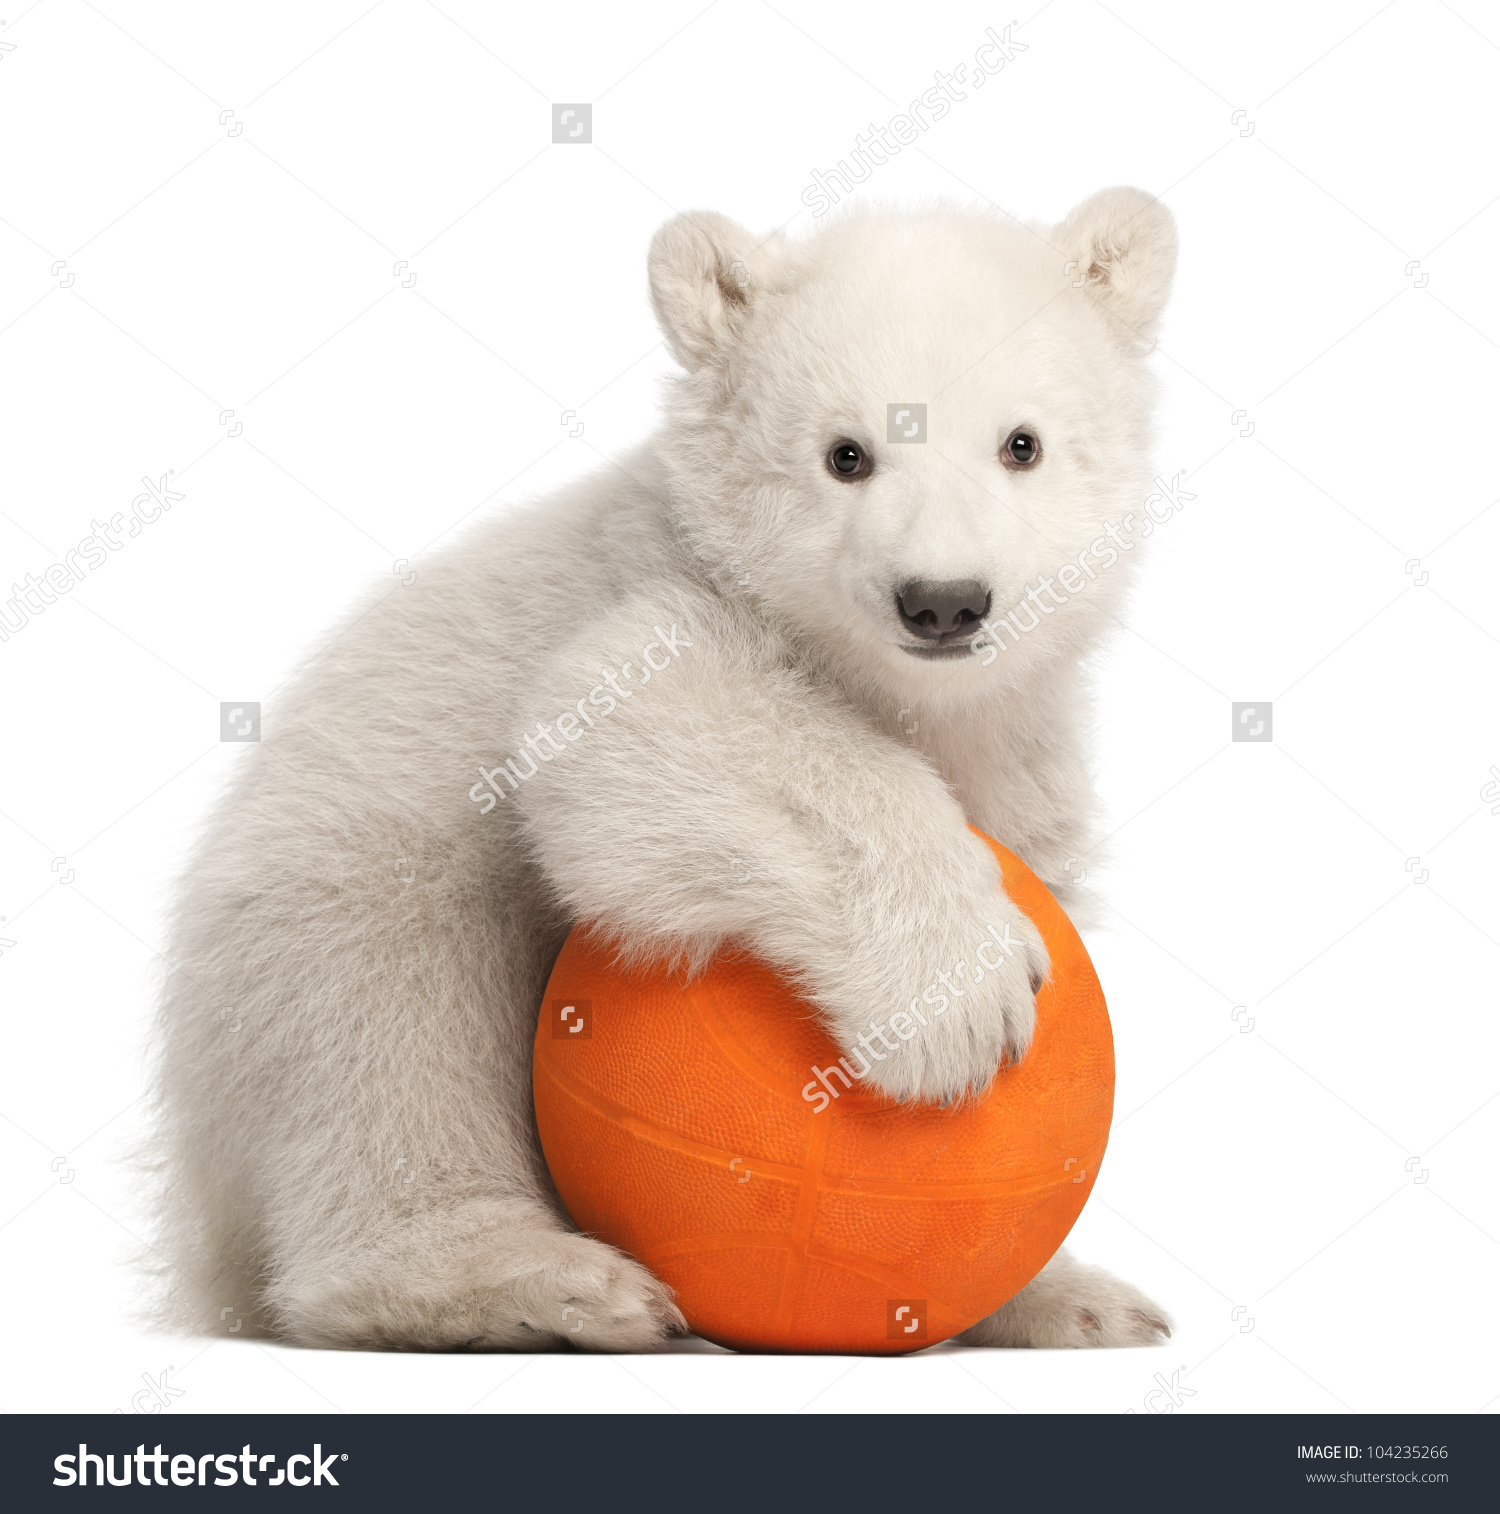 Polar Bear Cub, Ursus Maritimus, 3 Months Old, Playing With Orange.